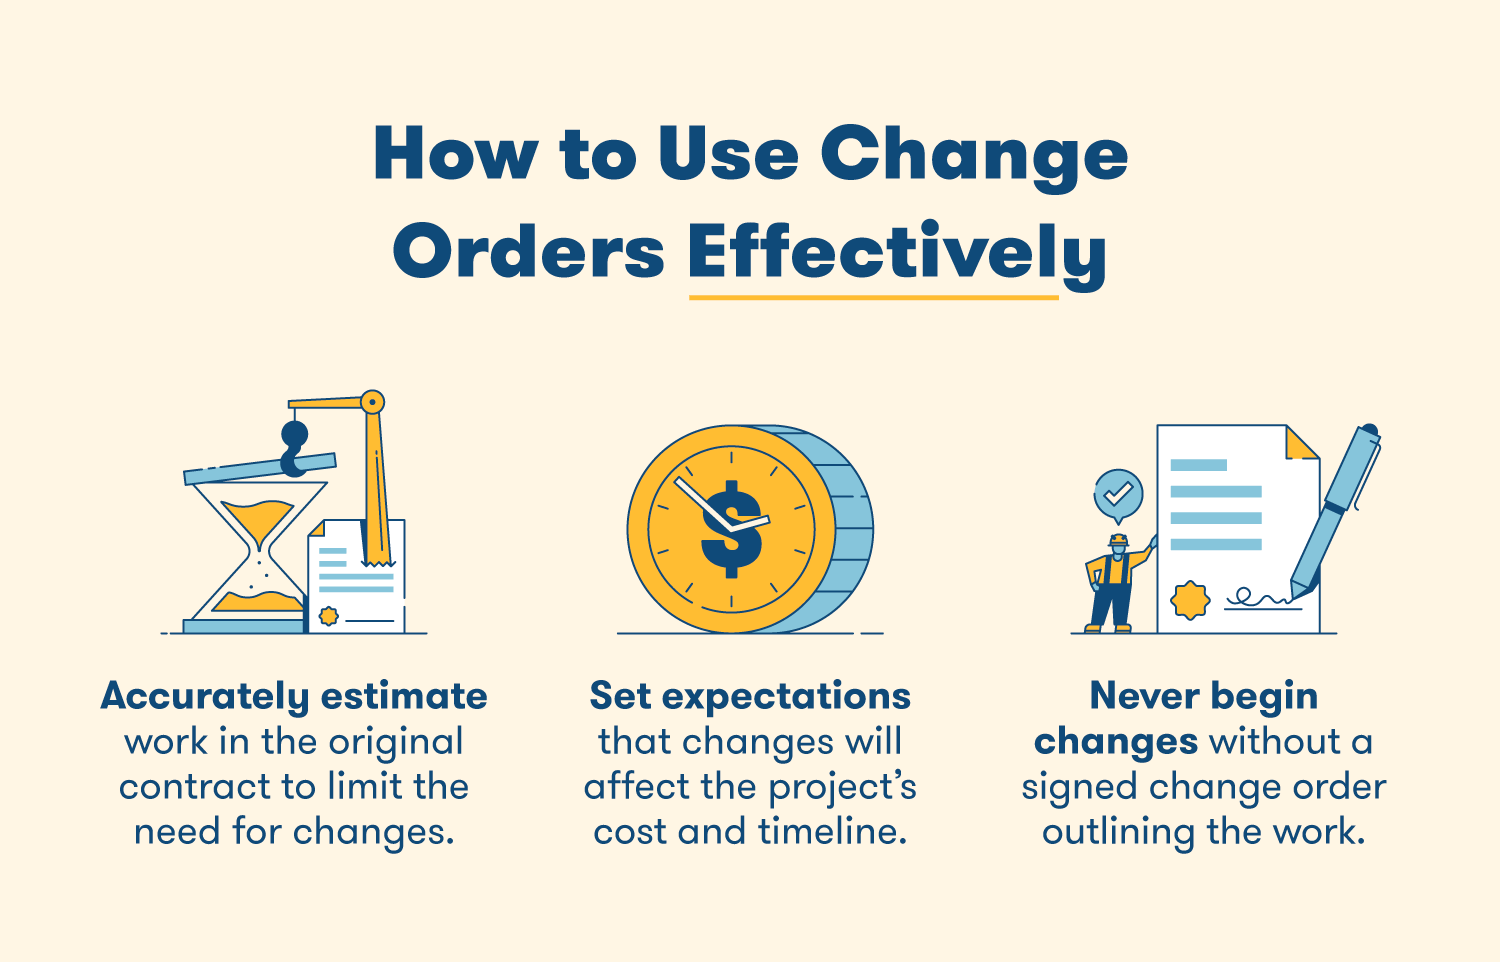 how to use change orders effectively